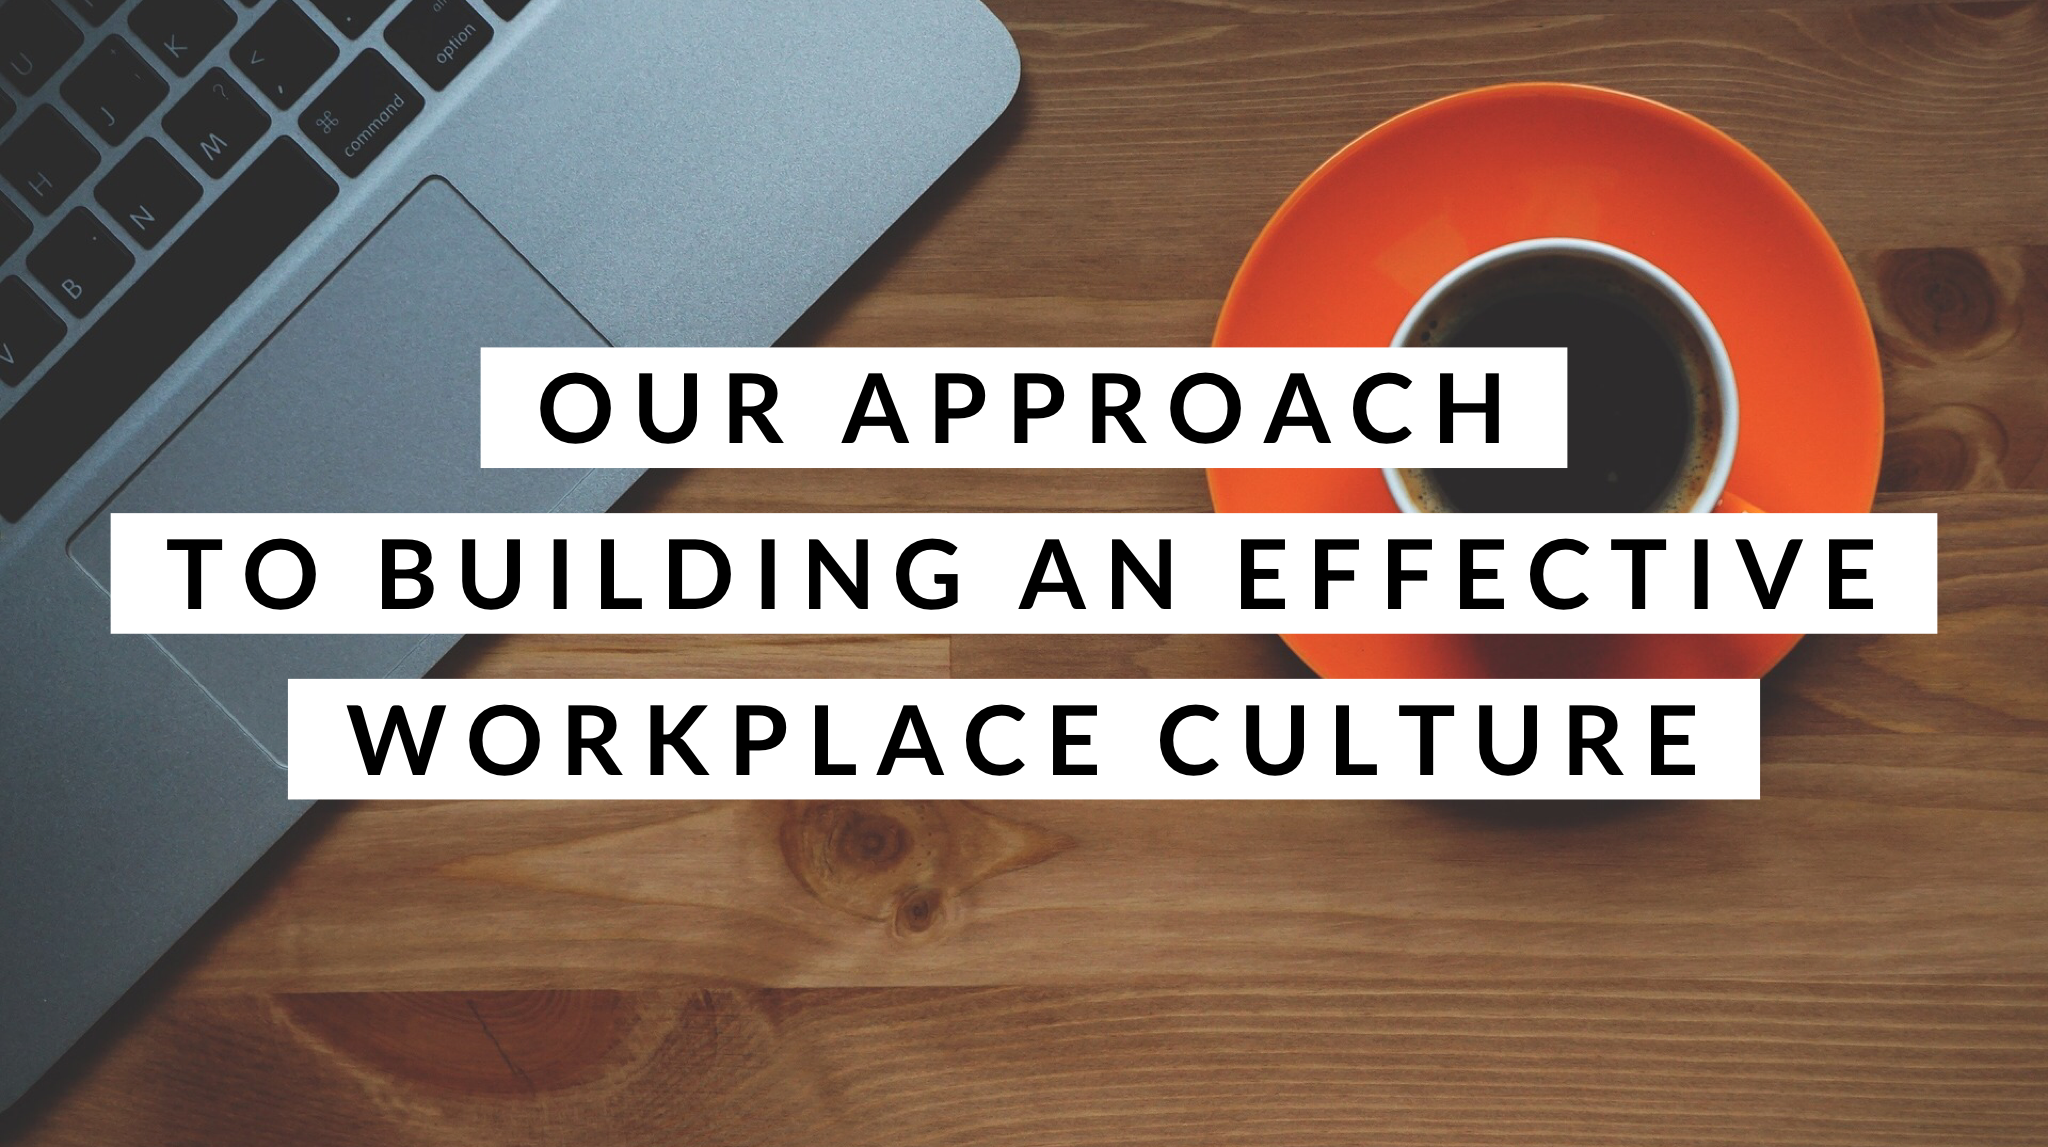 Our Approach to an Effective Workplace Culture